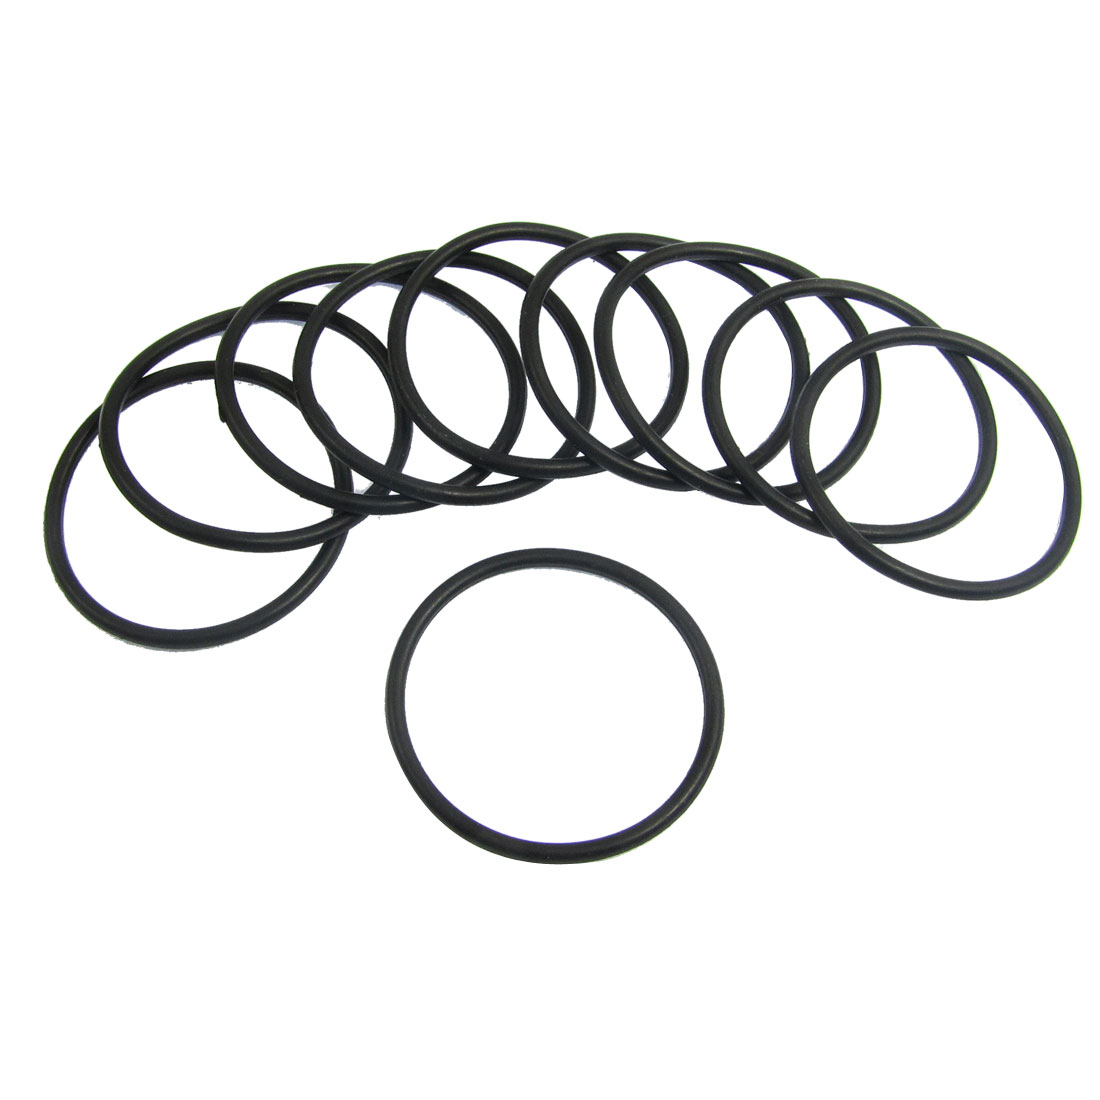 10 Pcs 37.5mm x 2.65mm Black Silicone O Rings Oil Seals Gaskets